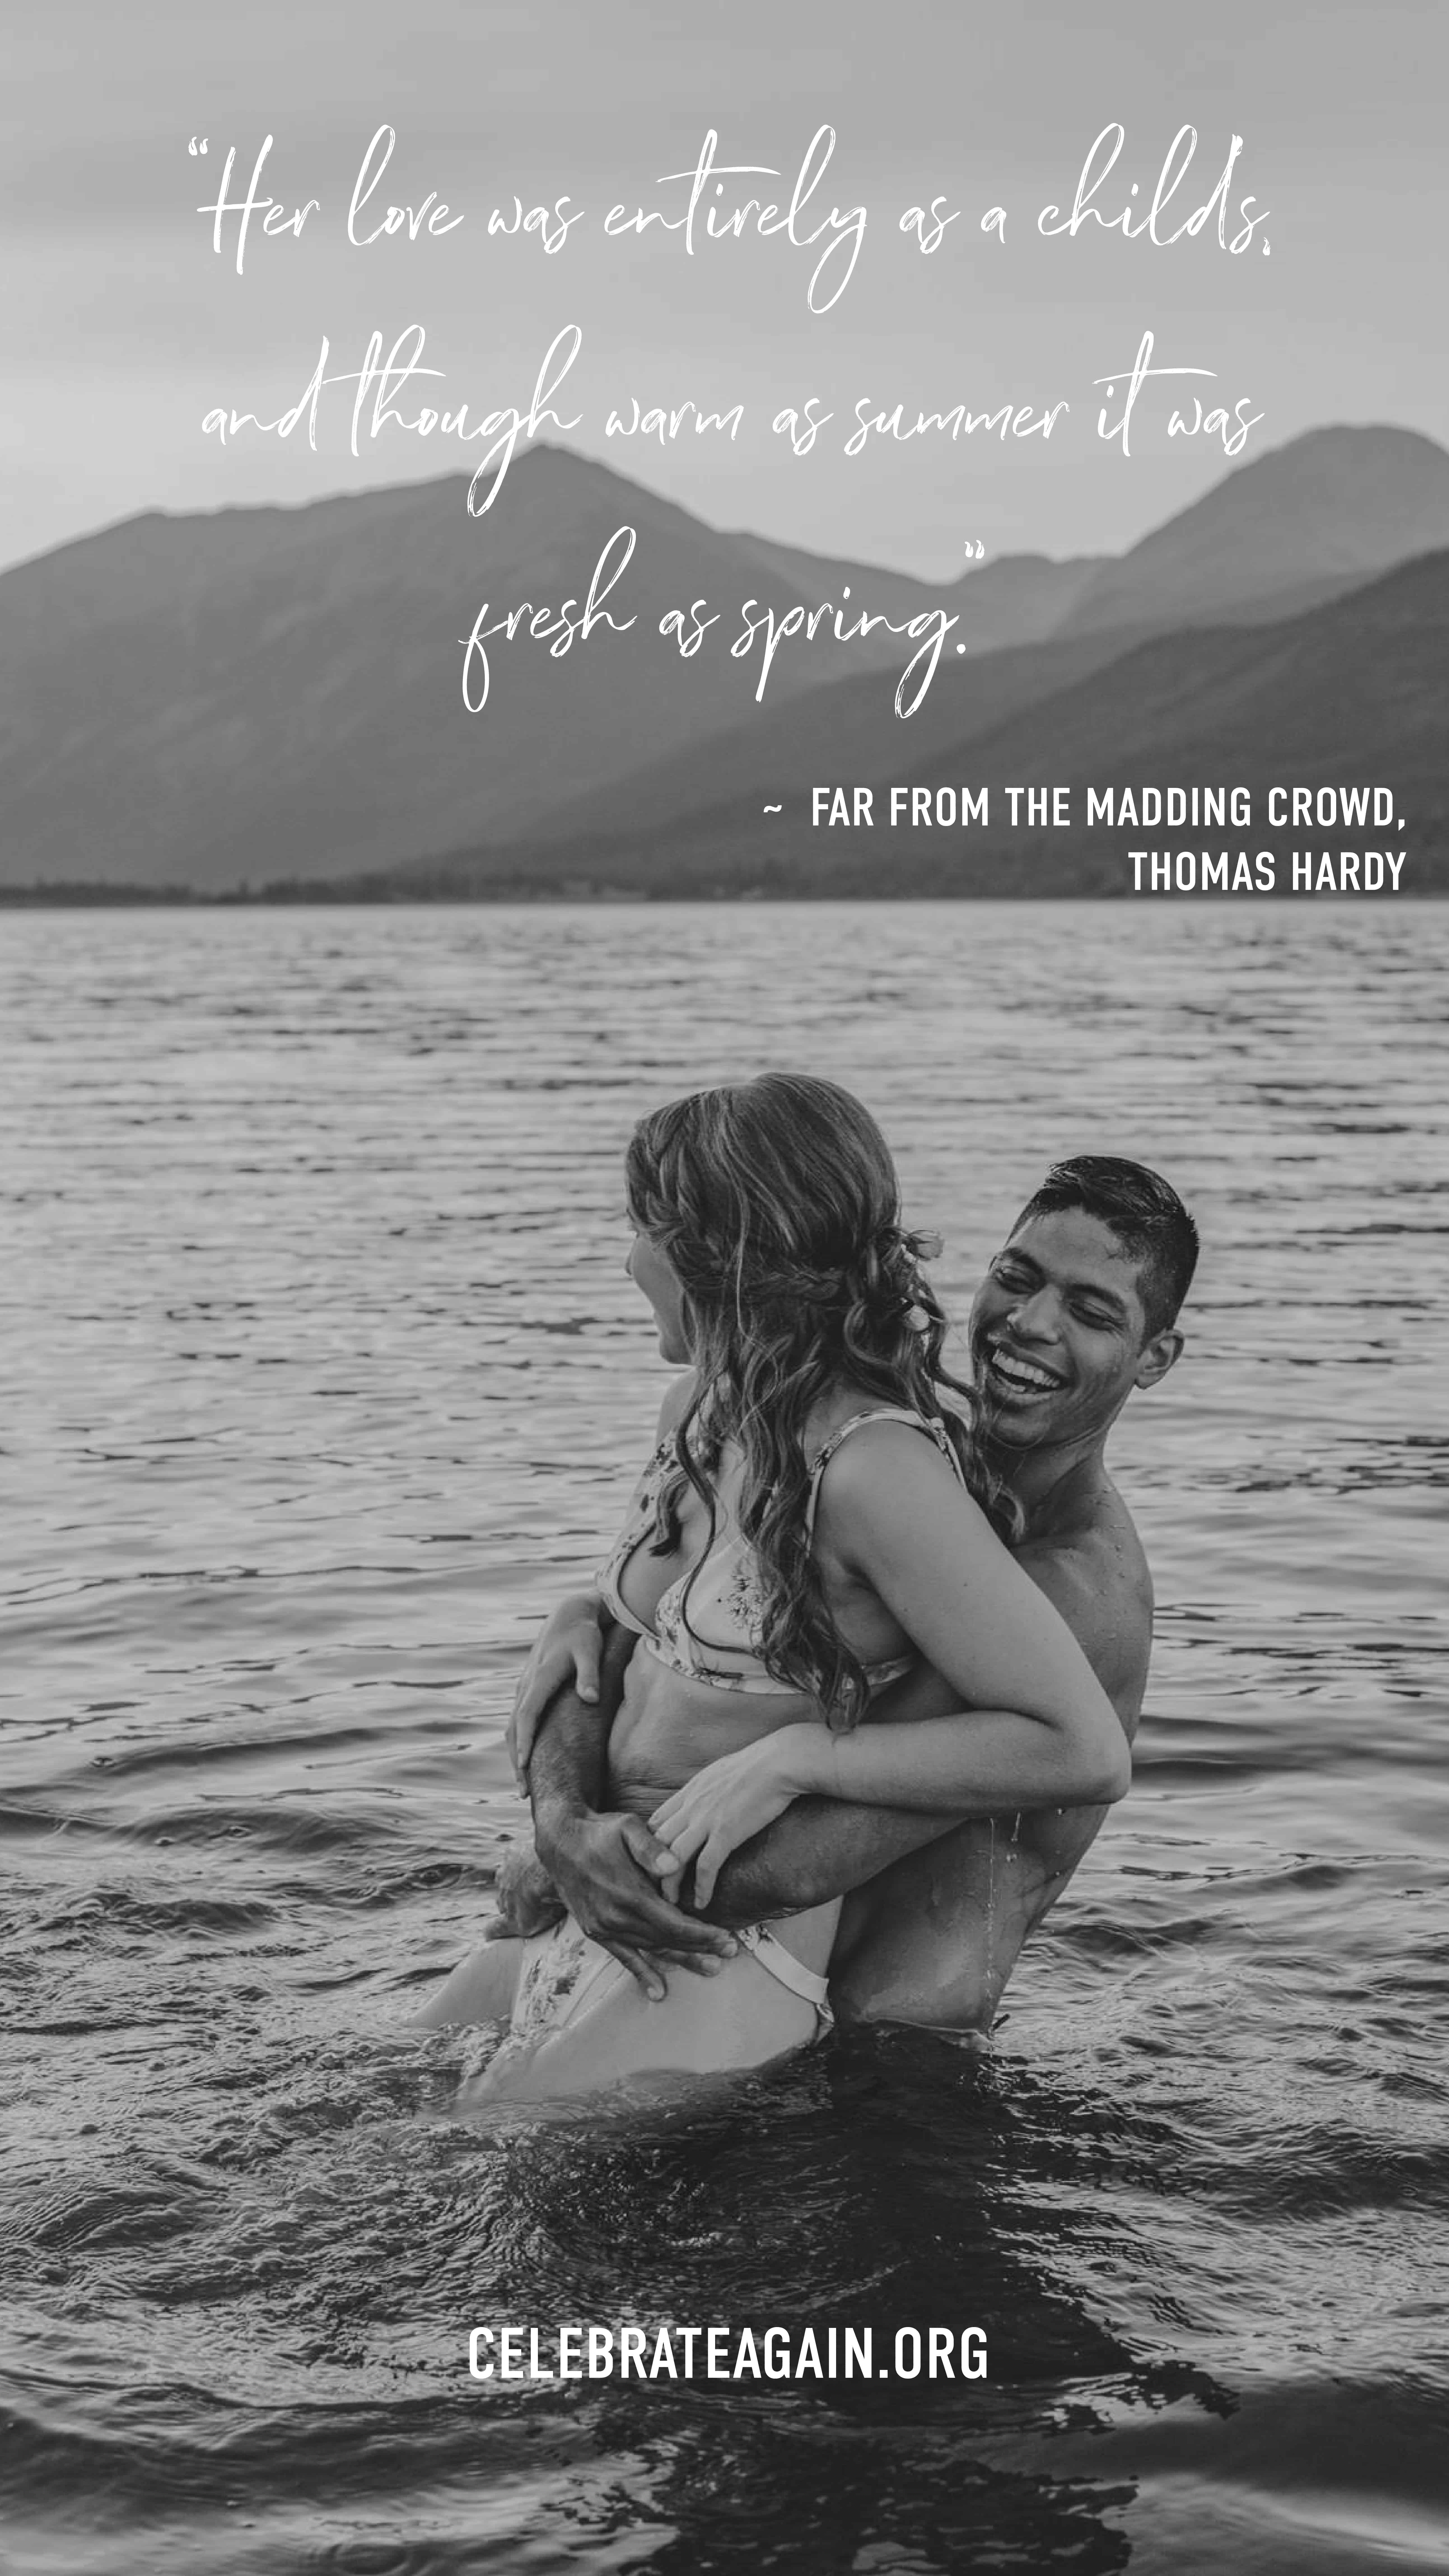 """romantic love quote for her """"Her love was entirely as a child's, and though warm as summer it was fresh as spring."""" - Far From The Madding Crowd by Thomas Hardy image of couple in alpine lake playing in the water image by celebrateagain.org"""